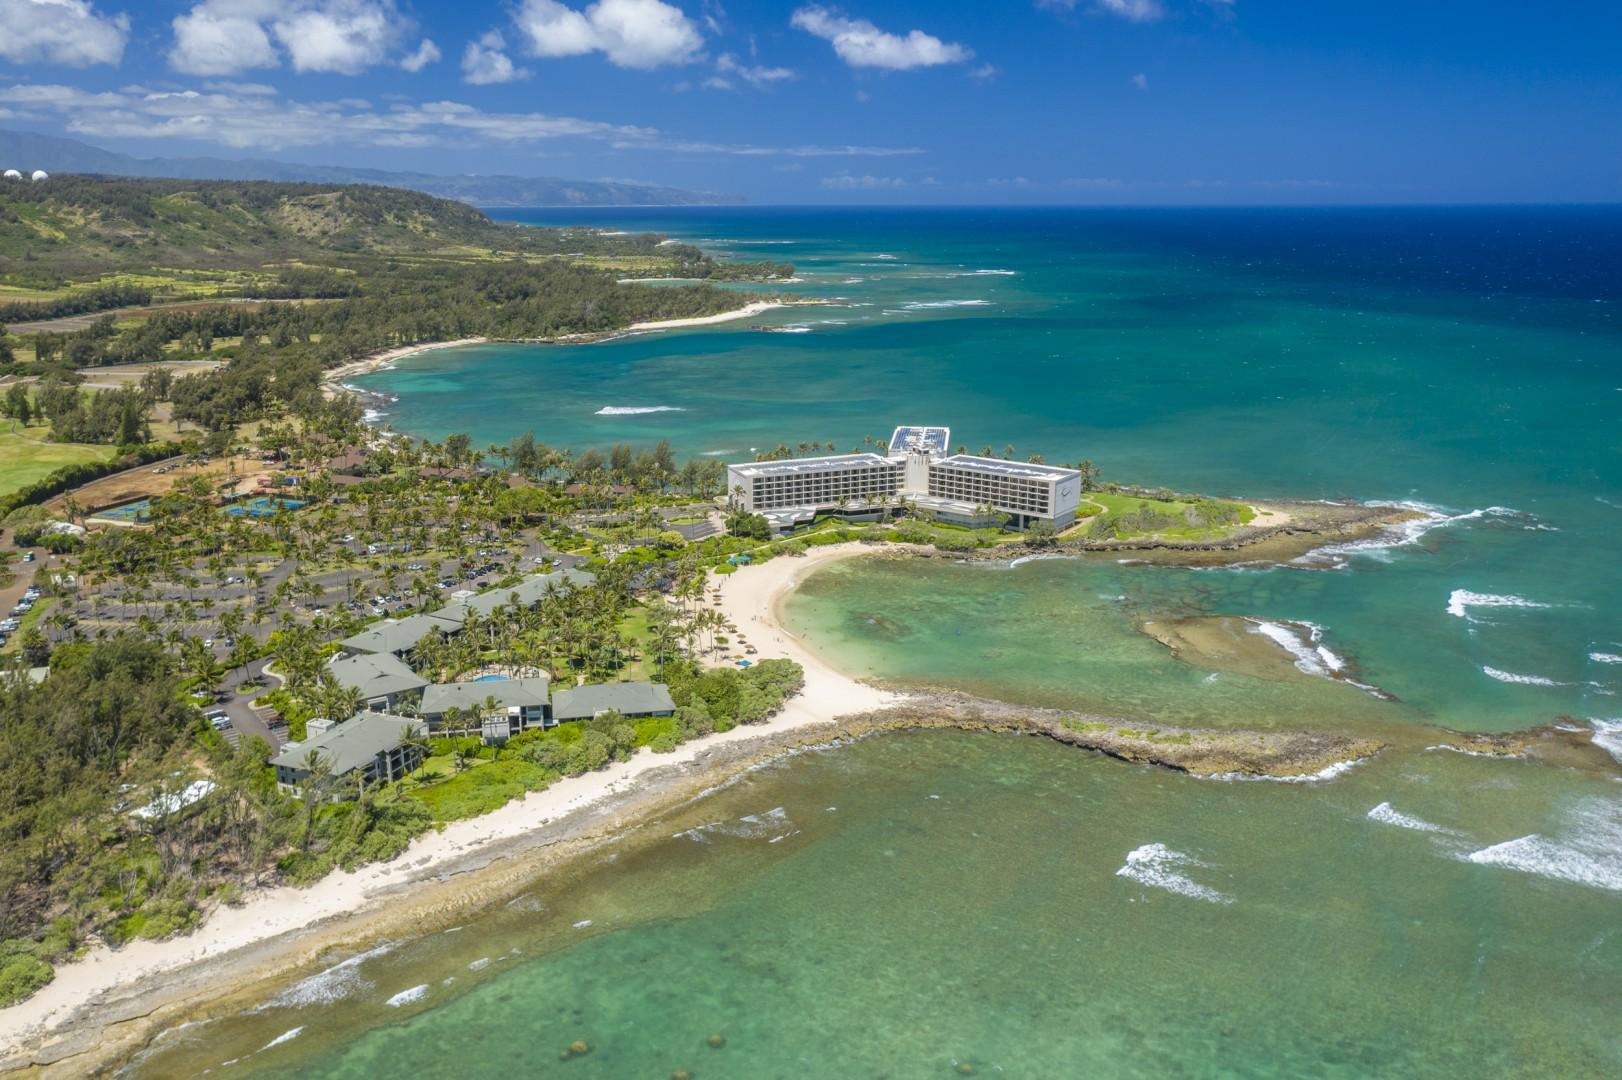 Overview of Turtle Bay Hotel and the adjacent Turtle Bay Villas, with the beach just steps away.